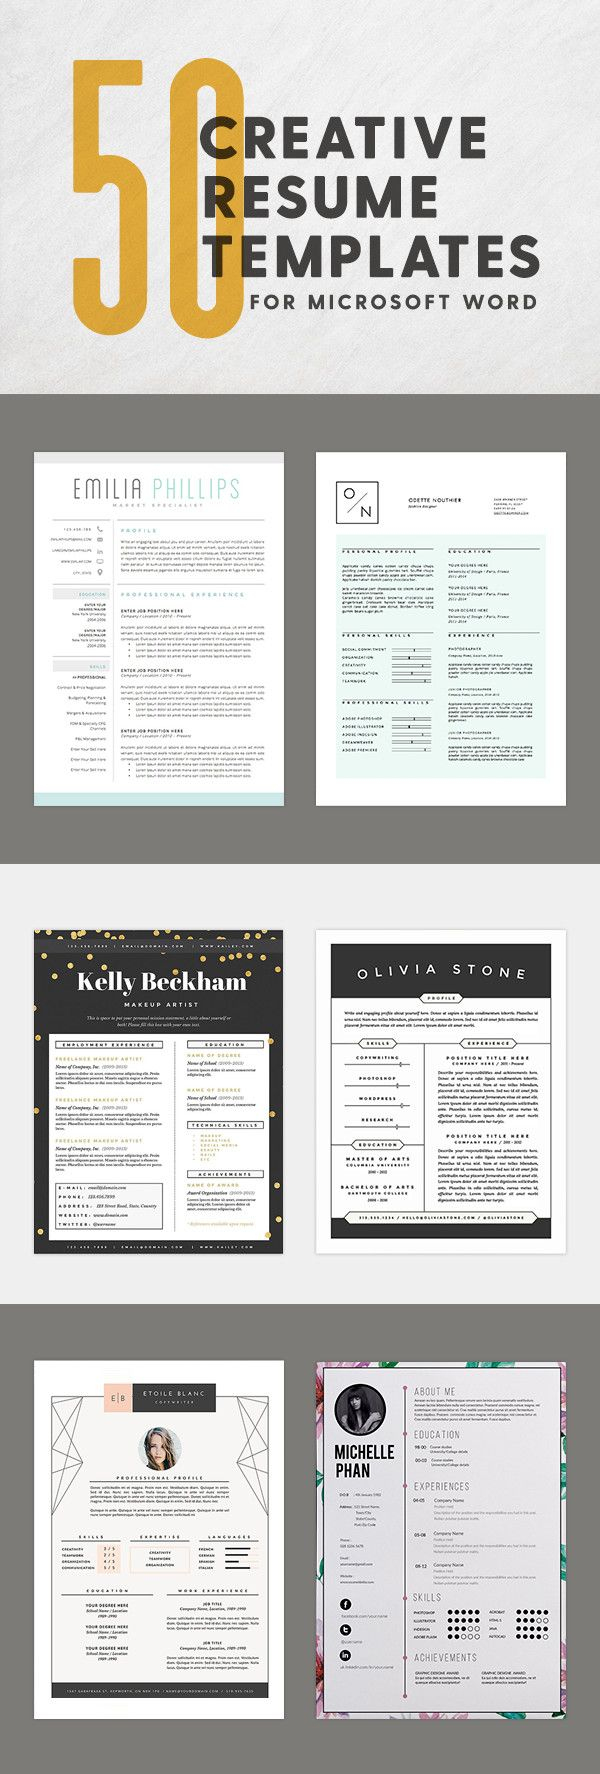 50 creative resume templates you wont believe are microsoft word - Professional Resume Templates Microsoft Word